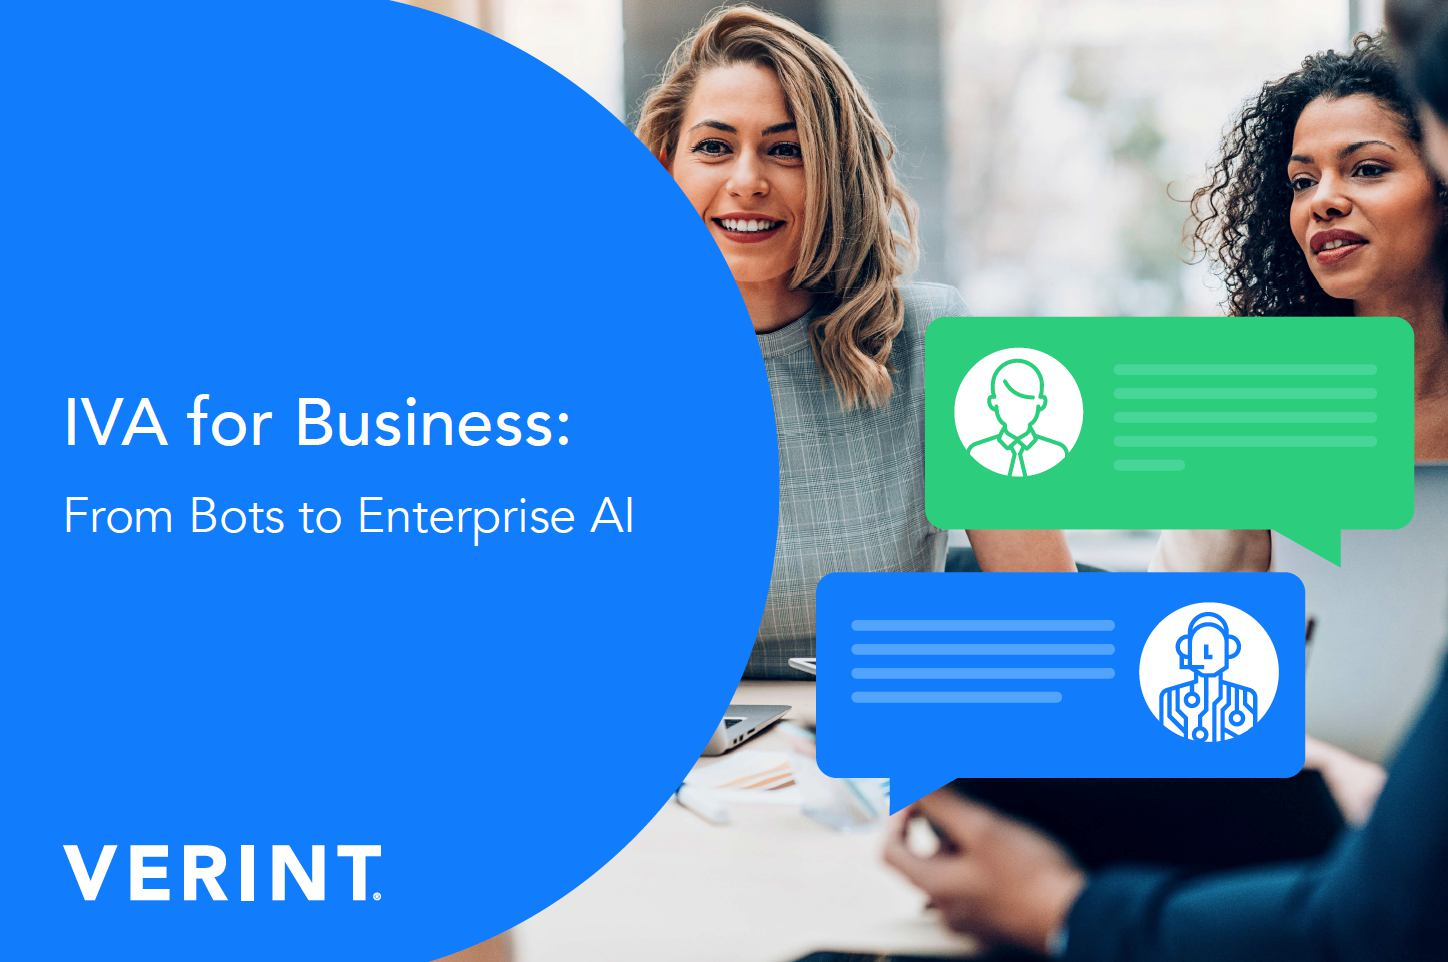 Verint IVA for Business from Bots to Enteprise IVA ebook